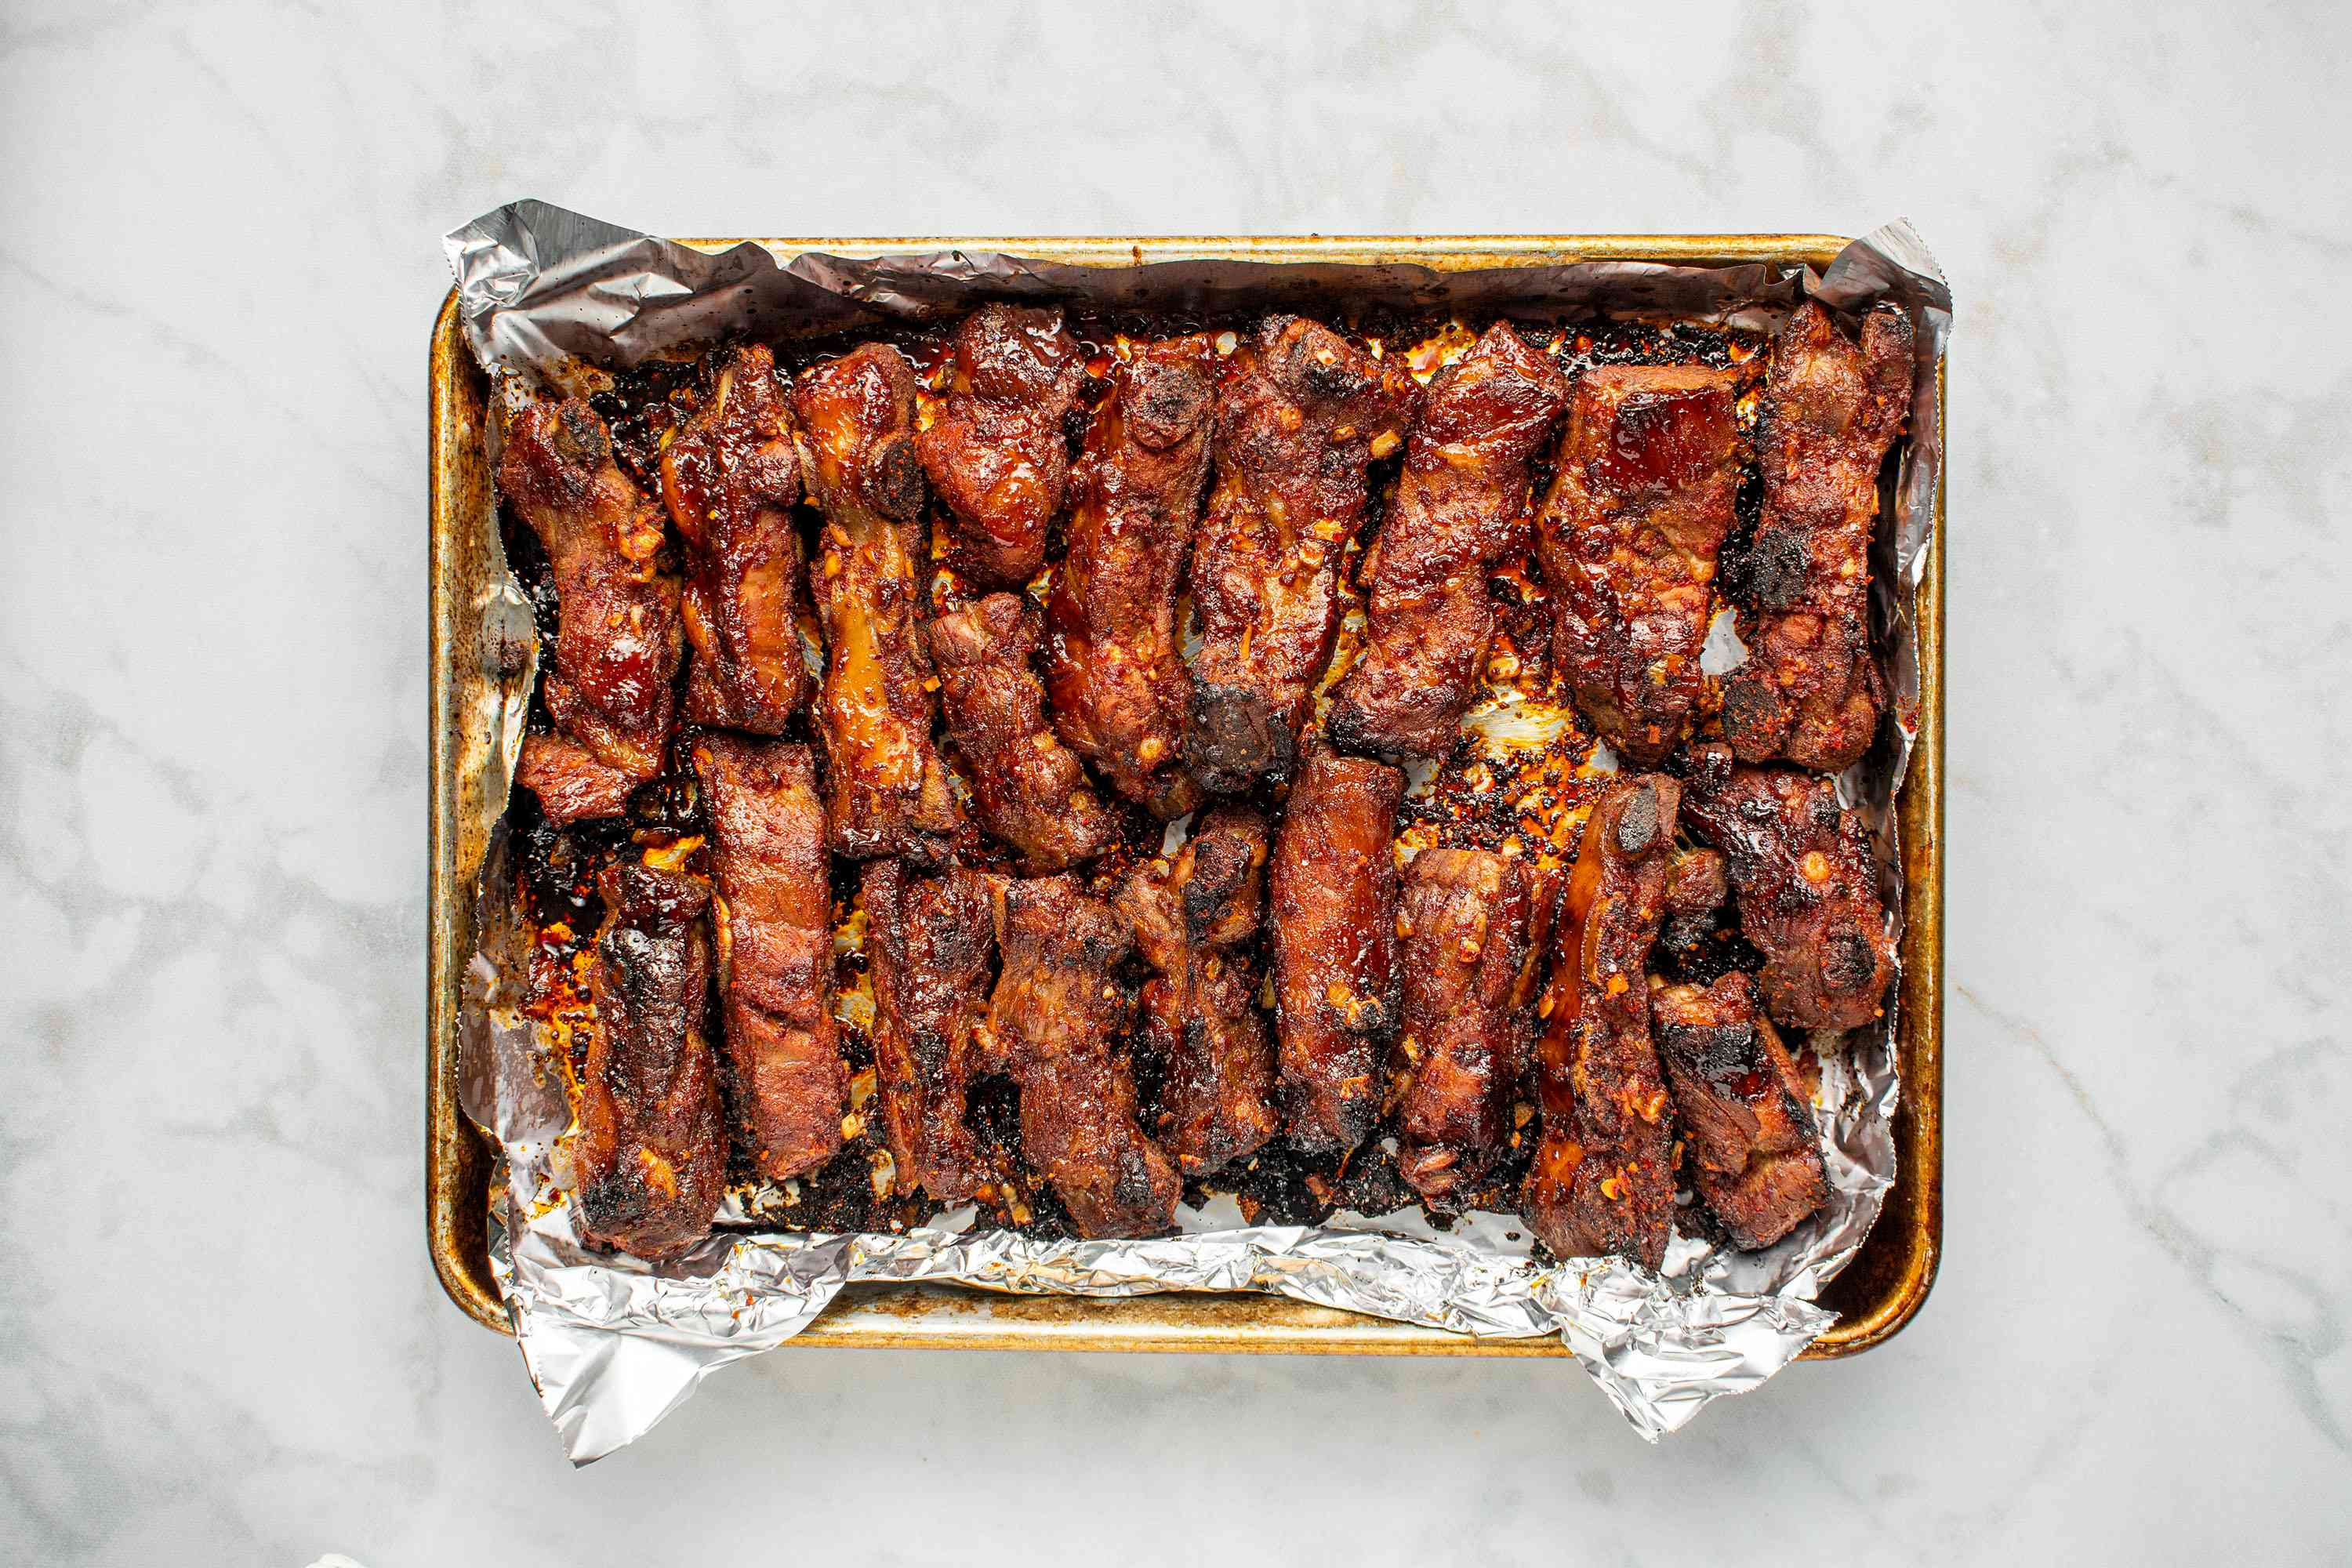 Korean Sweet and Spicy Pork Spareribs on a baking dish